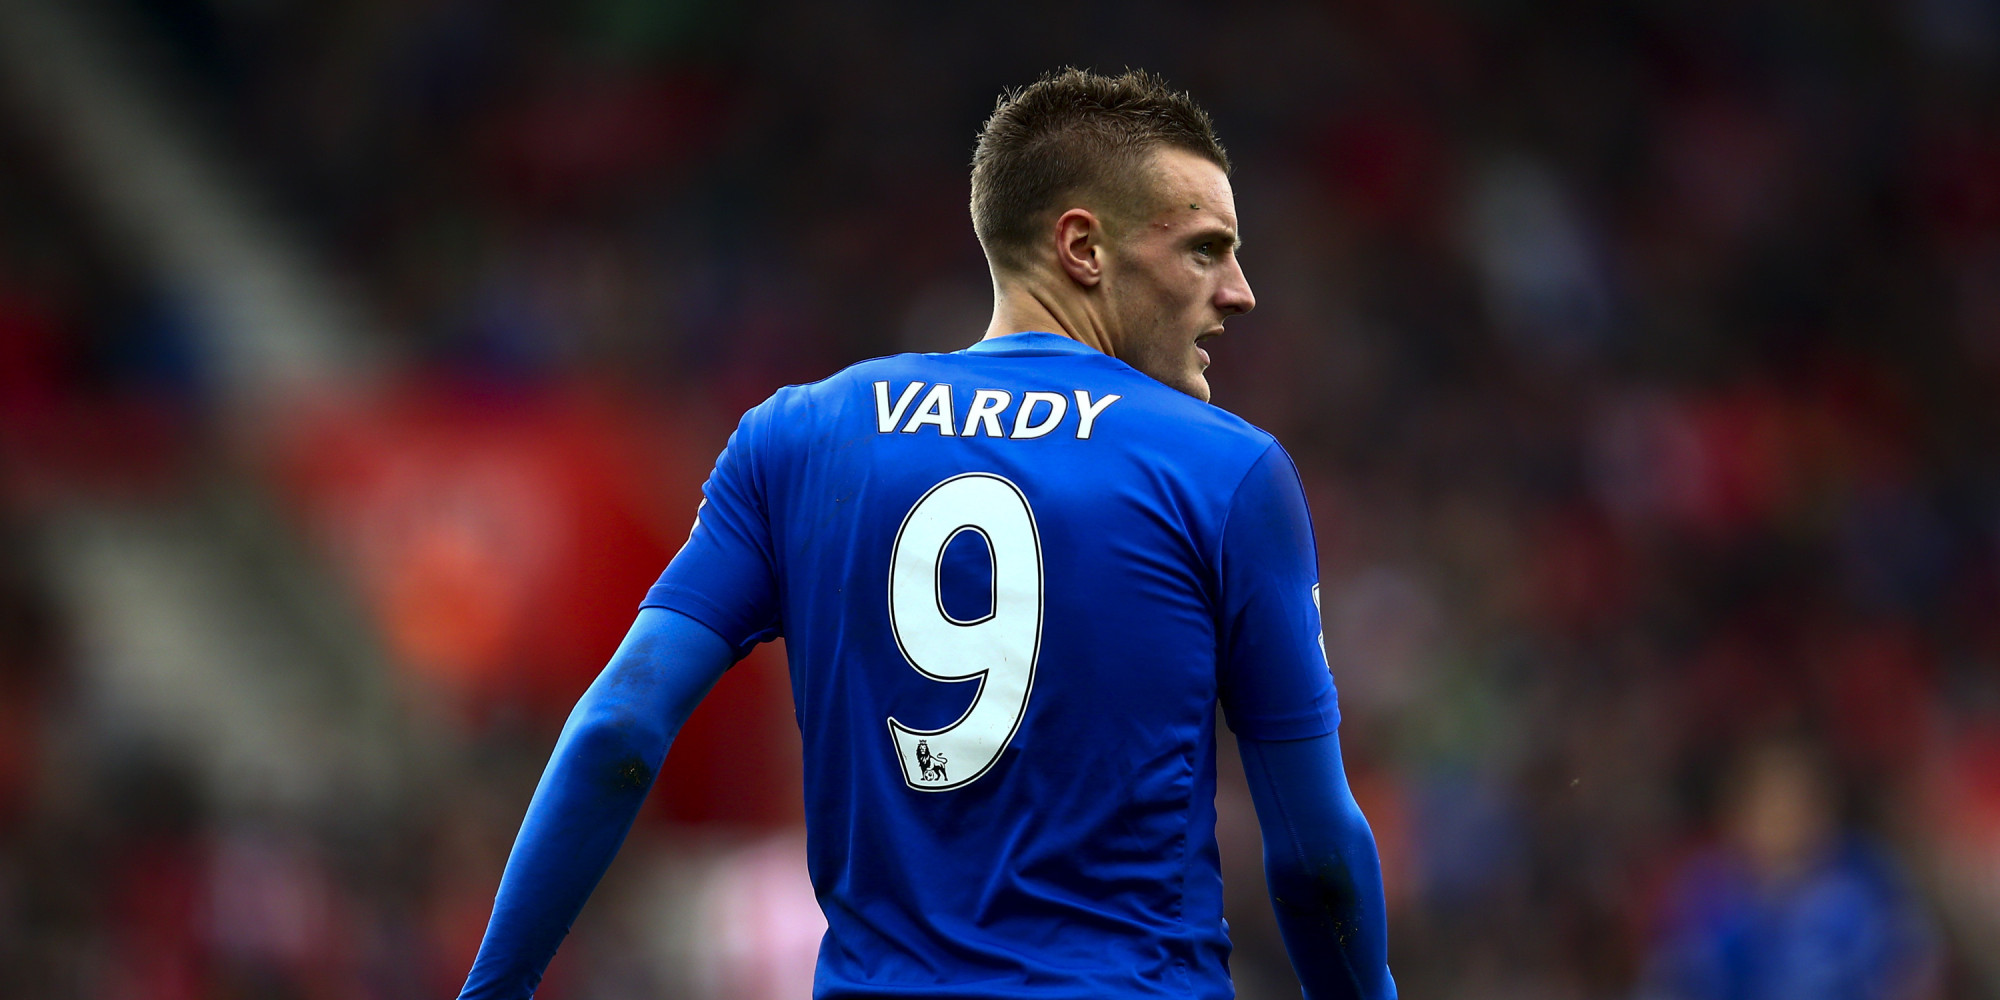 Jamie Vardy: The Striker Whose Form Can Open Doors for ...